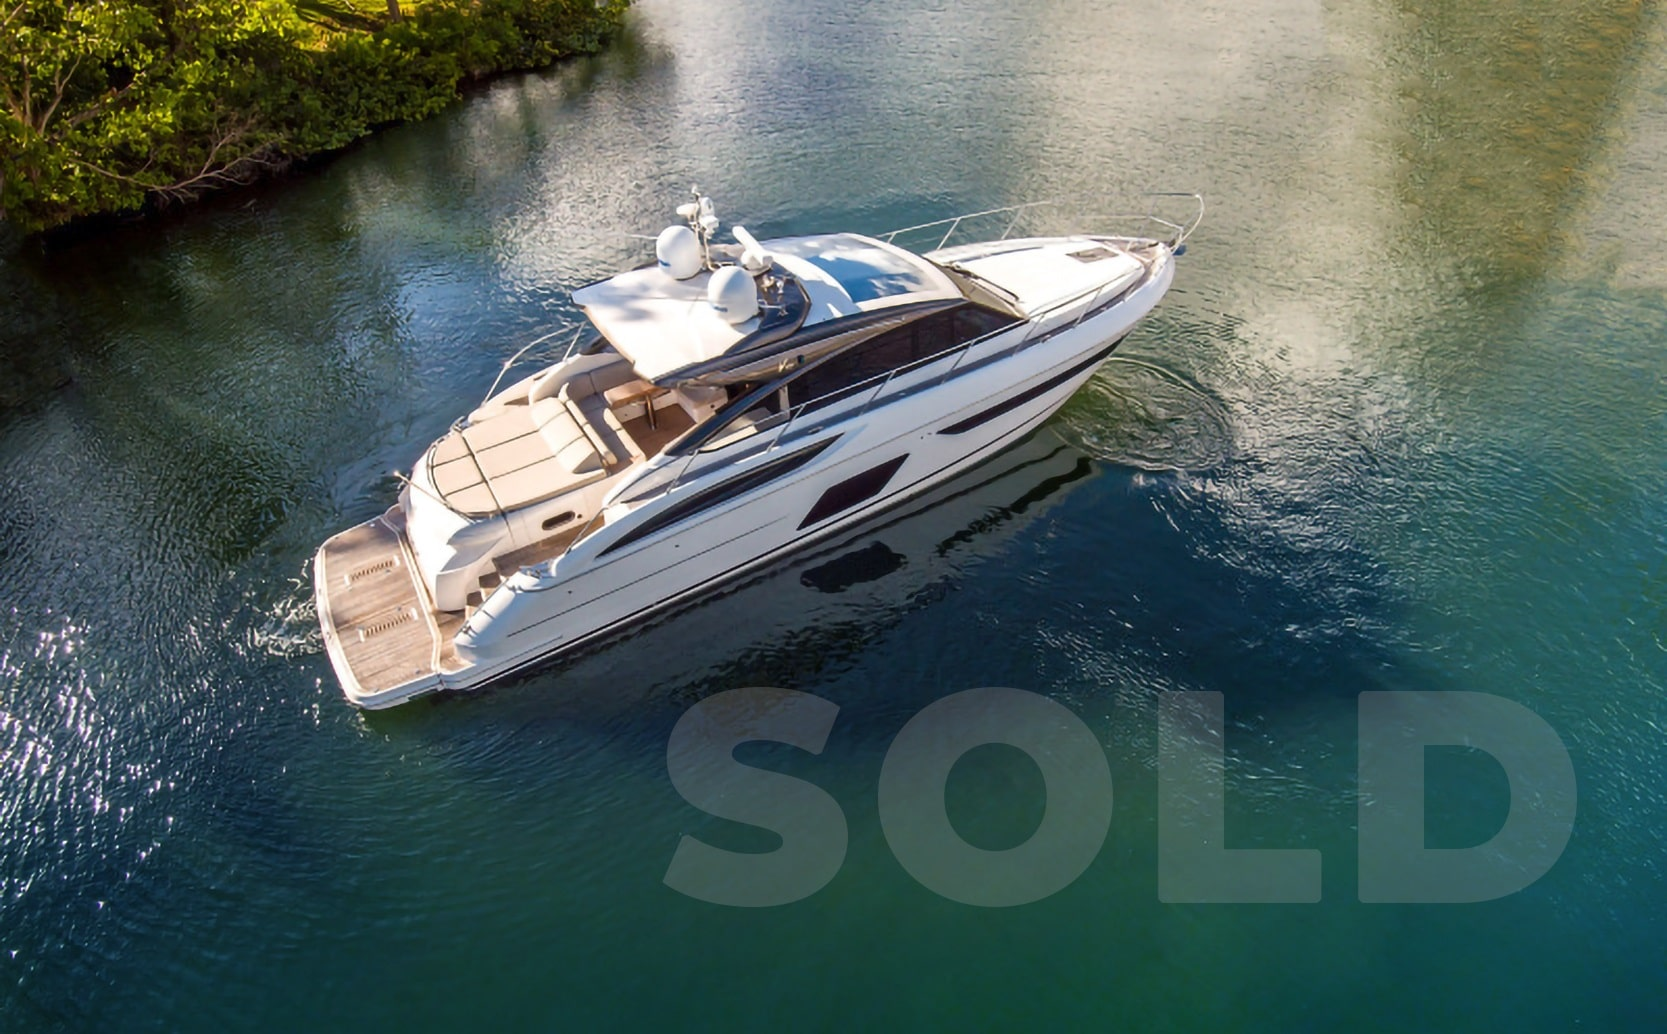 2016 V58 Princess Yacht sold report